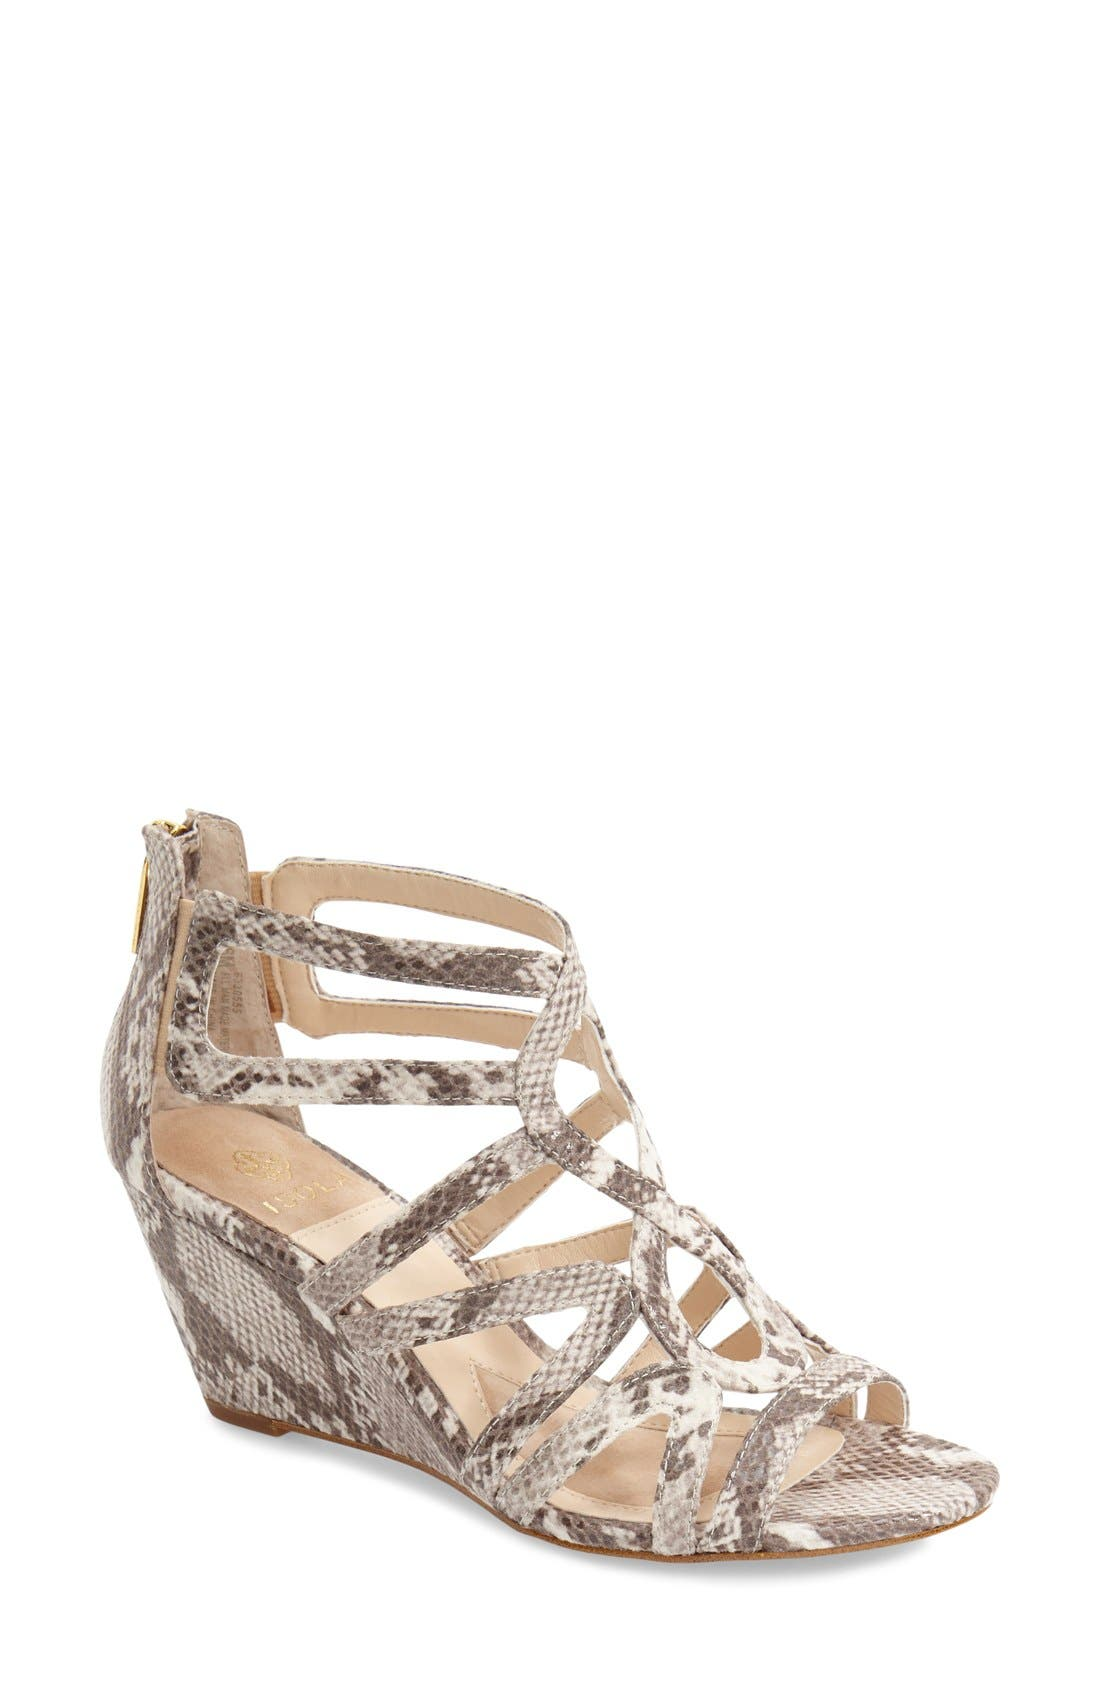 ISOLÁ 'Flora' Snake Embossed Wedge Sandal